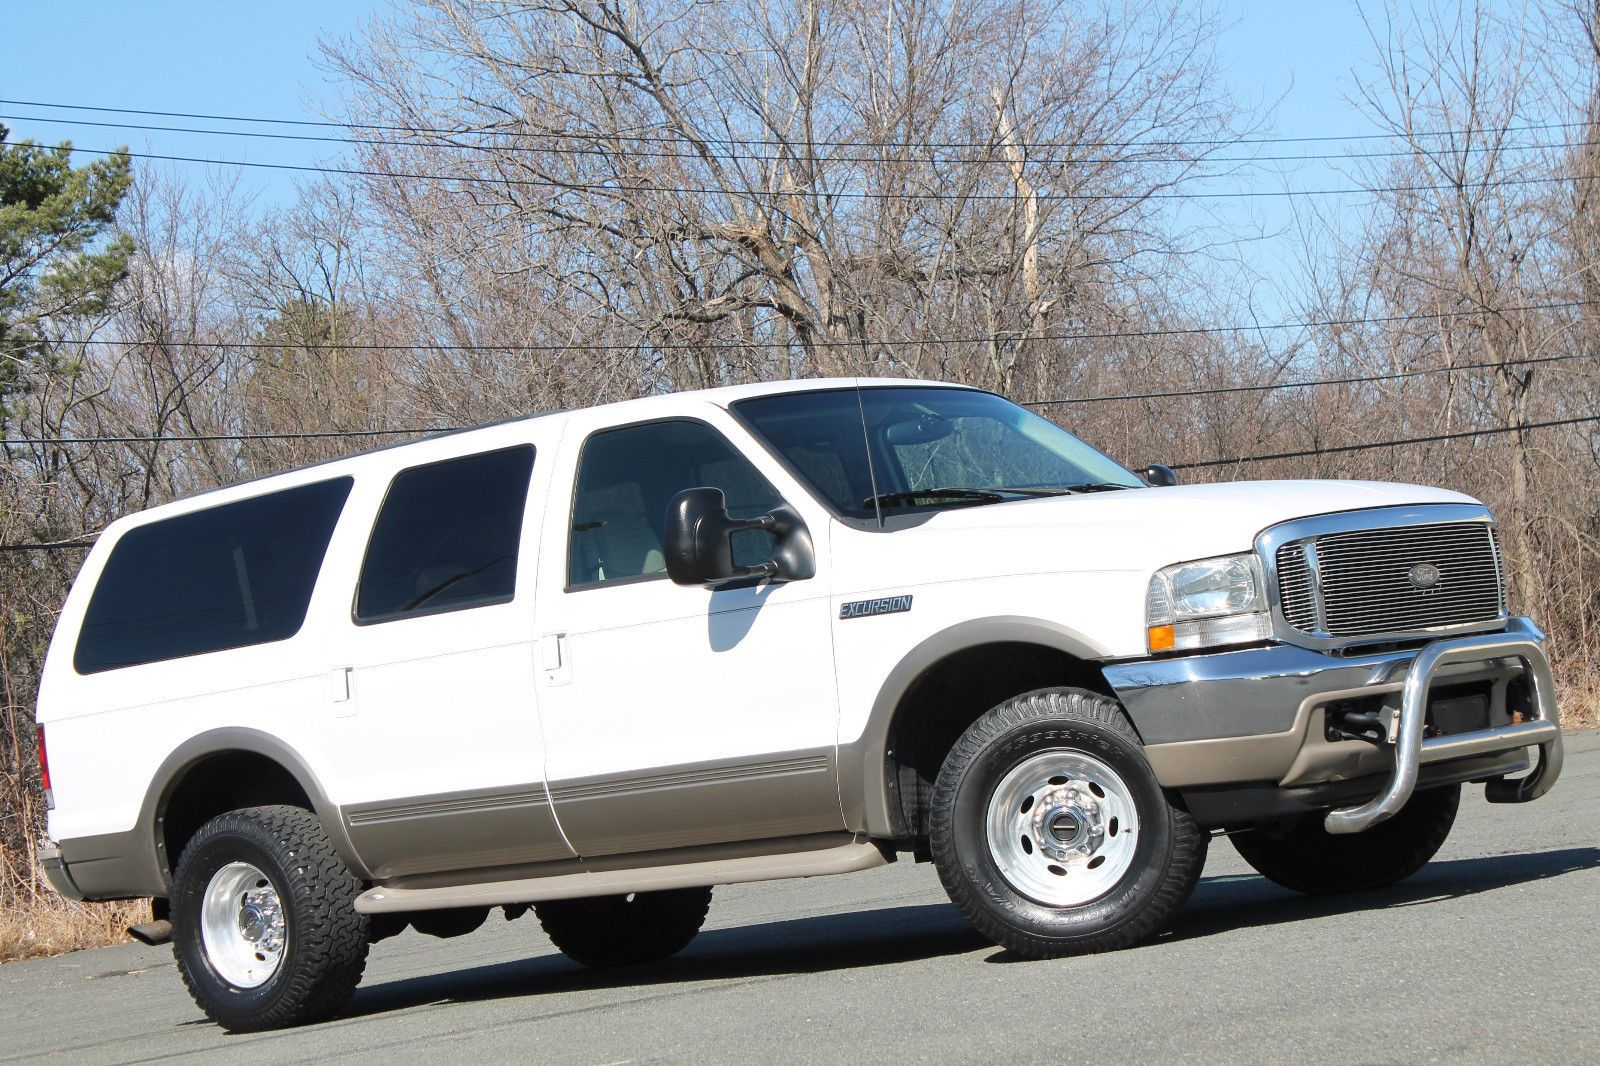 2000 ford excursion 7 3l powerstroke diesel 4x4 texas truck carfax 2000 ford excursion 4x4 7 3l powerstroke diesel limited leather rust